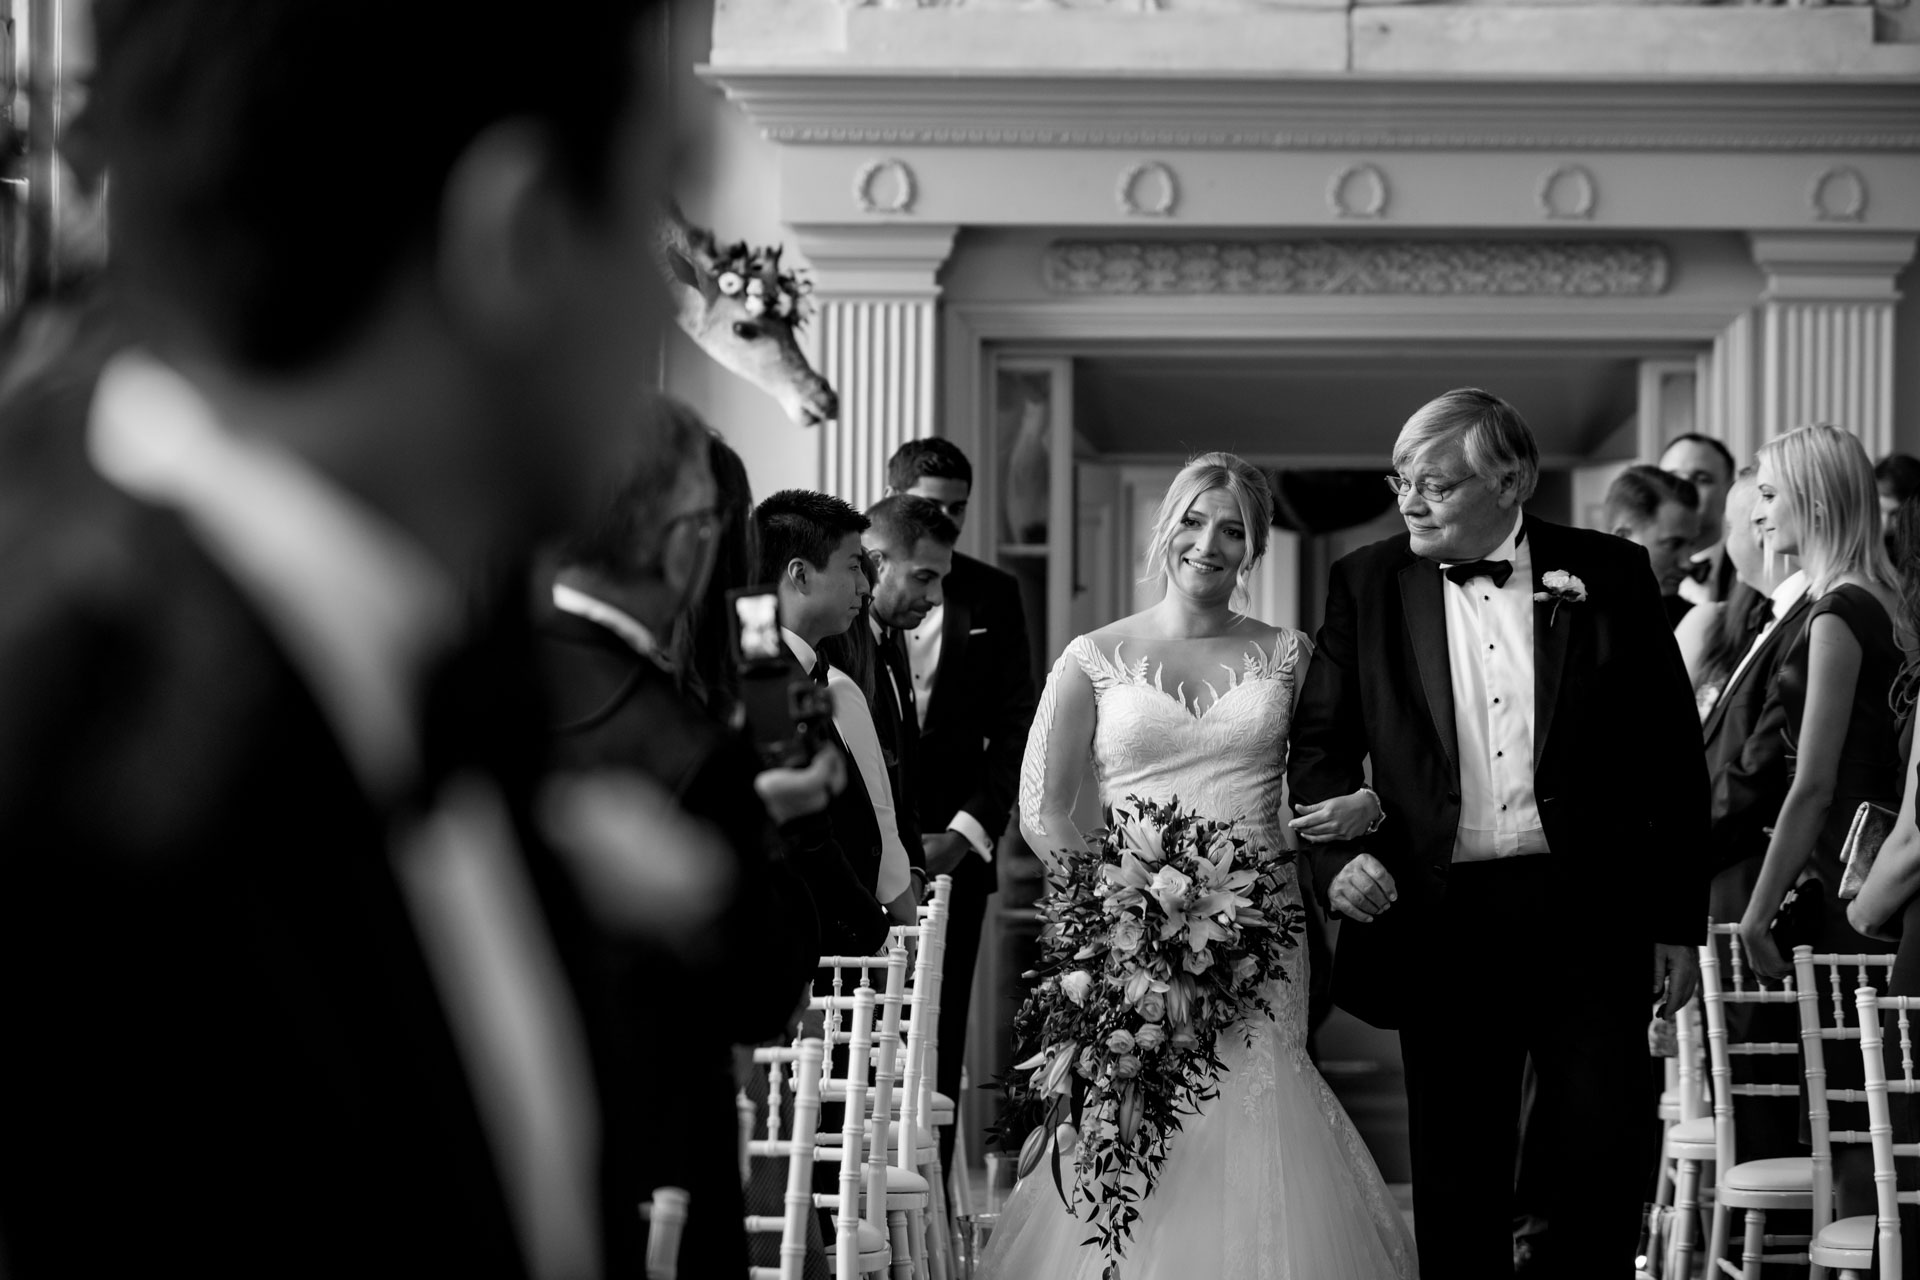 Aynhoe Park Wedding Photographer Oxfordshire - Harriet & Andrew